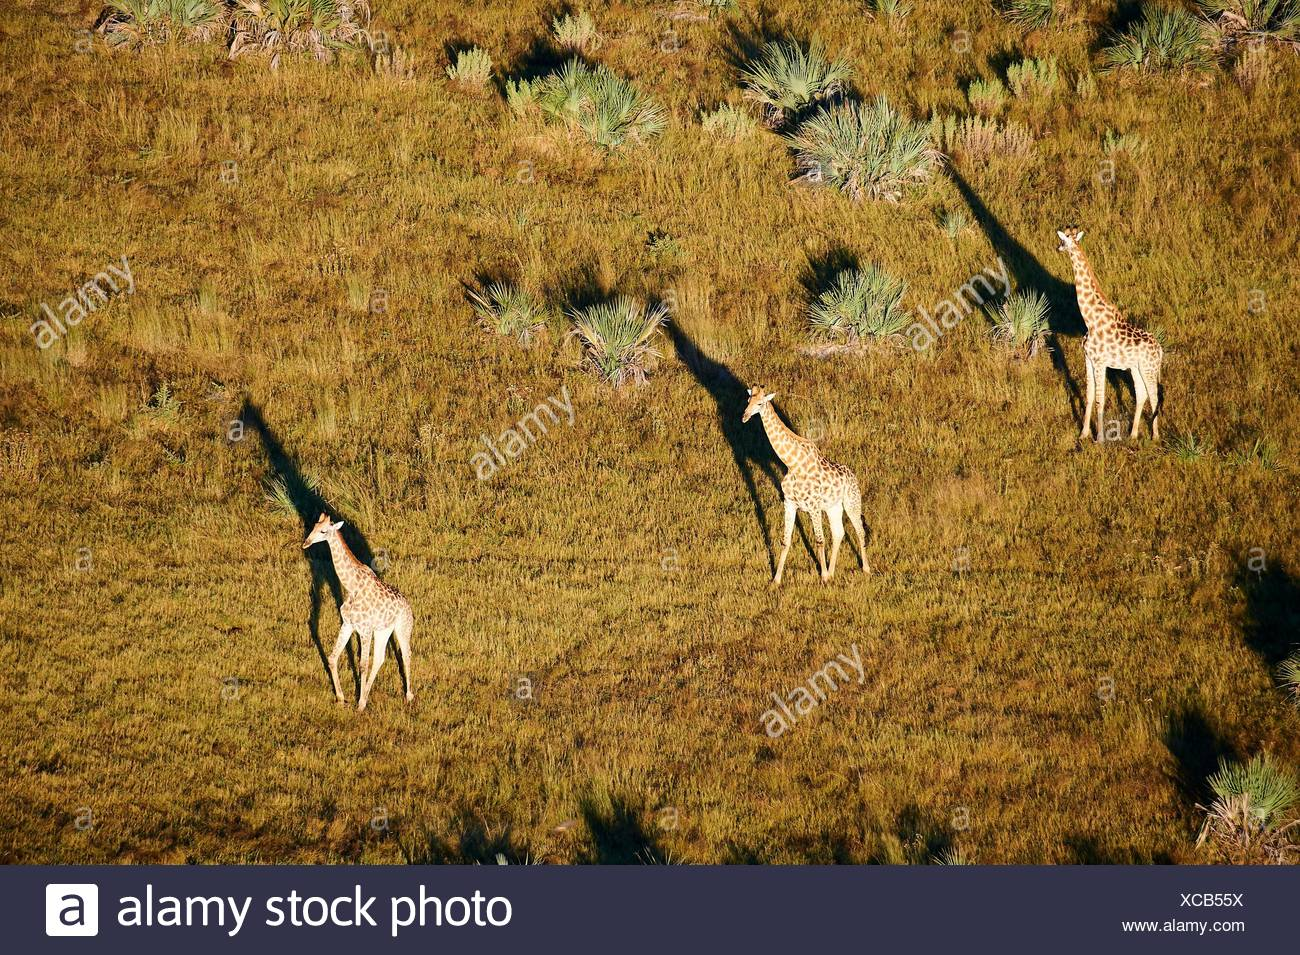 Aerial view of Giraffe group running (Giraffa camelopardalis angolensis) with shadow at sunrise, Okavango delta, Botswana, Africa. - Stock Image